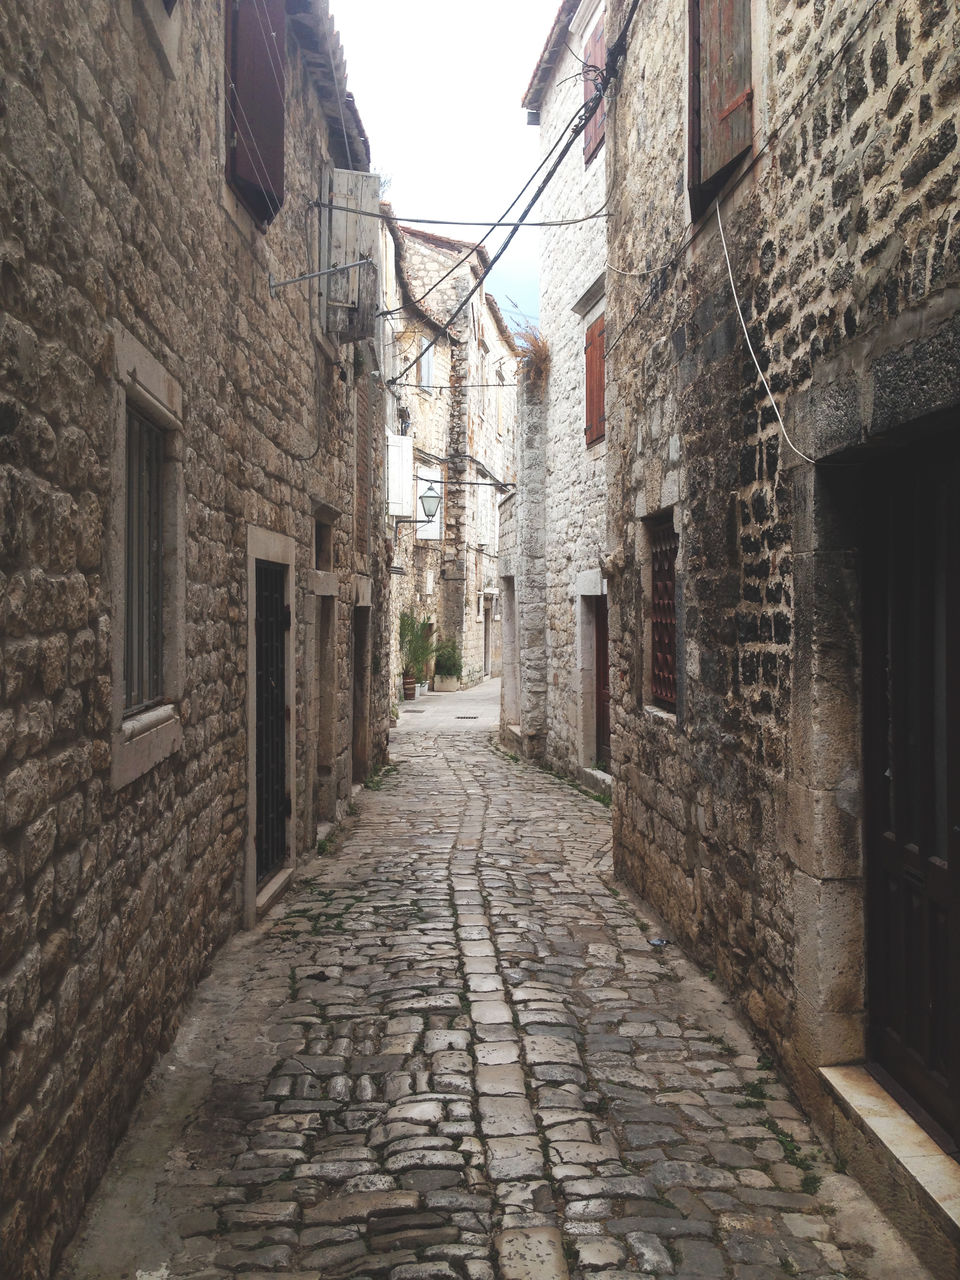 architecture, building exterior, built structure, building, street, direction, residential district, the way forward, city, narrow, cobblestone, no people, footpath, day, alley, house, wall, town, old, outdoors, long, paving stone